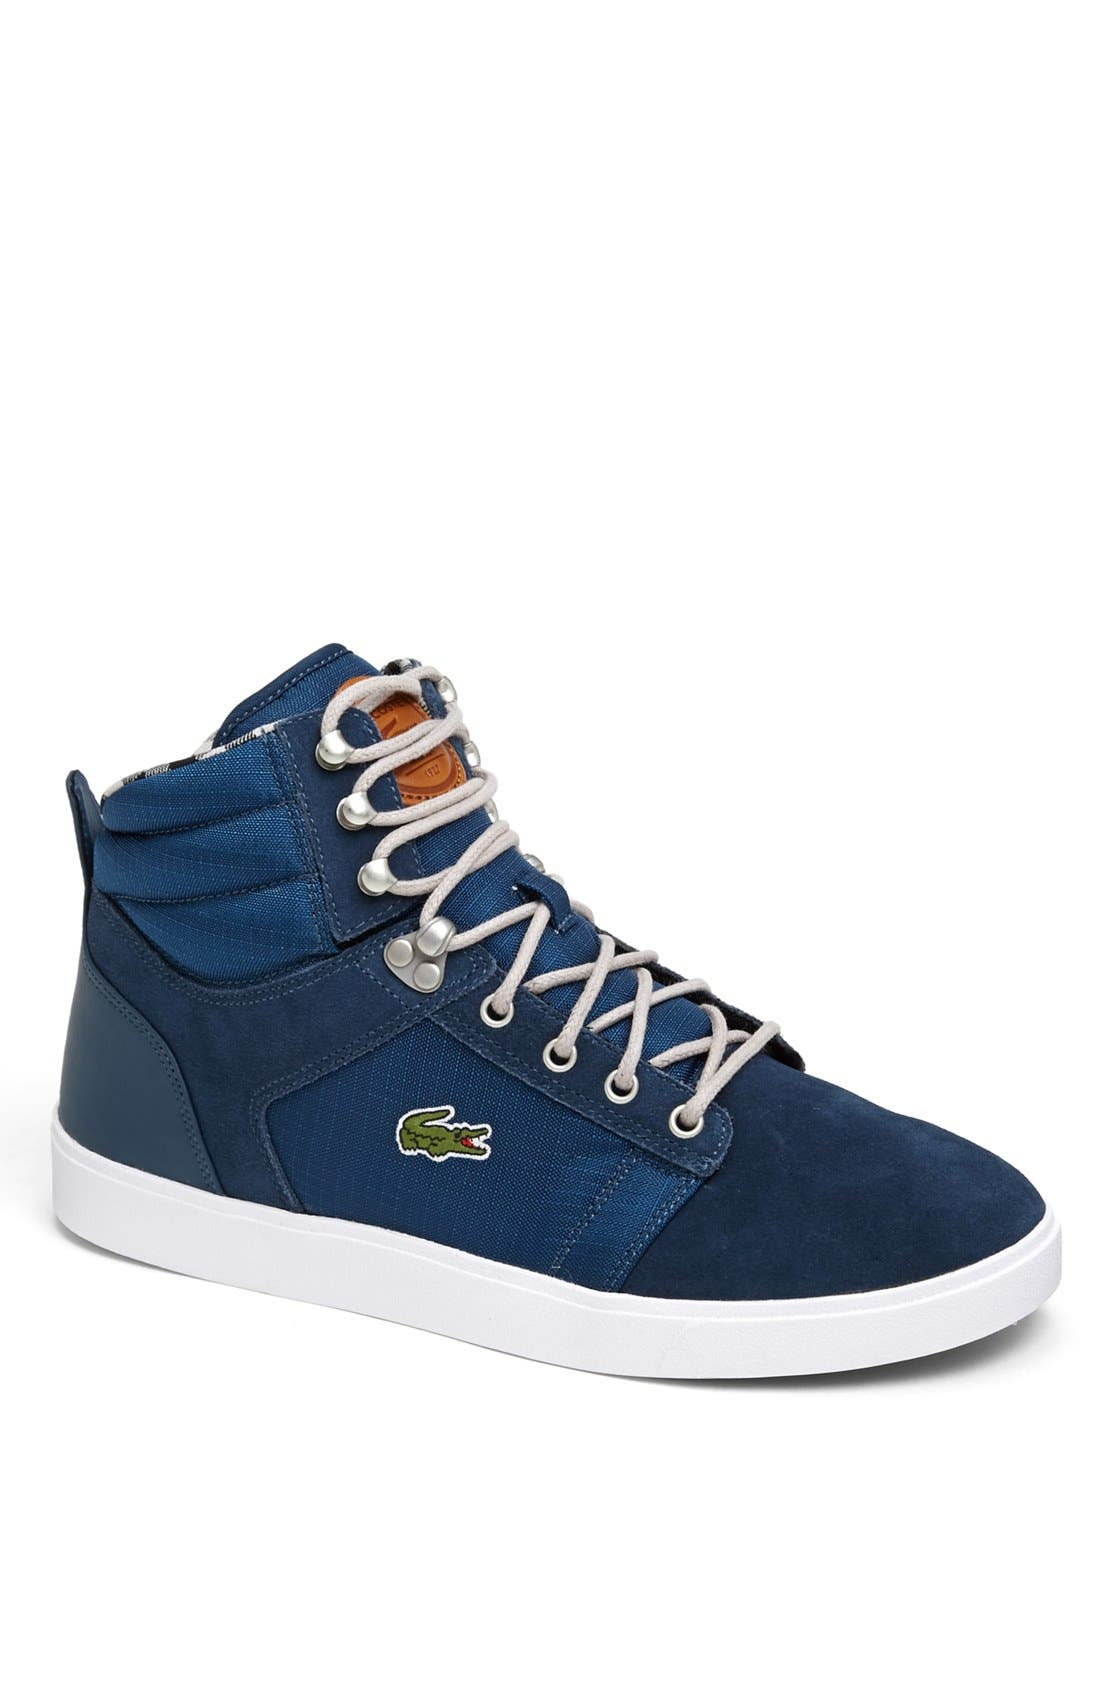 Alternate Image 1 Selected - Lacoste 'Orelle' Sneaker